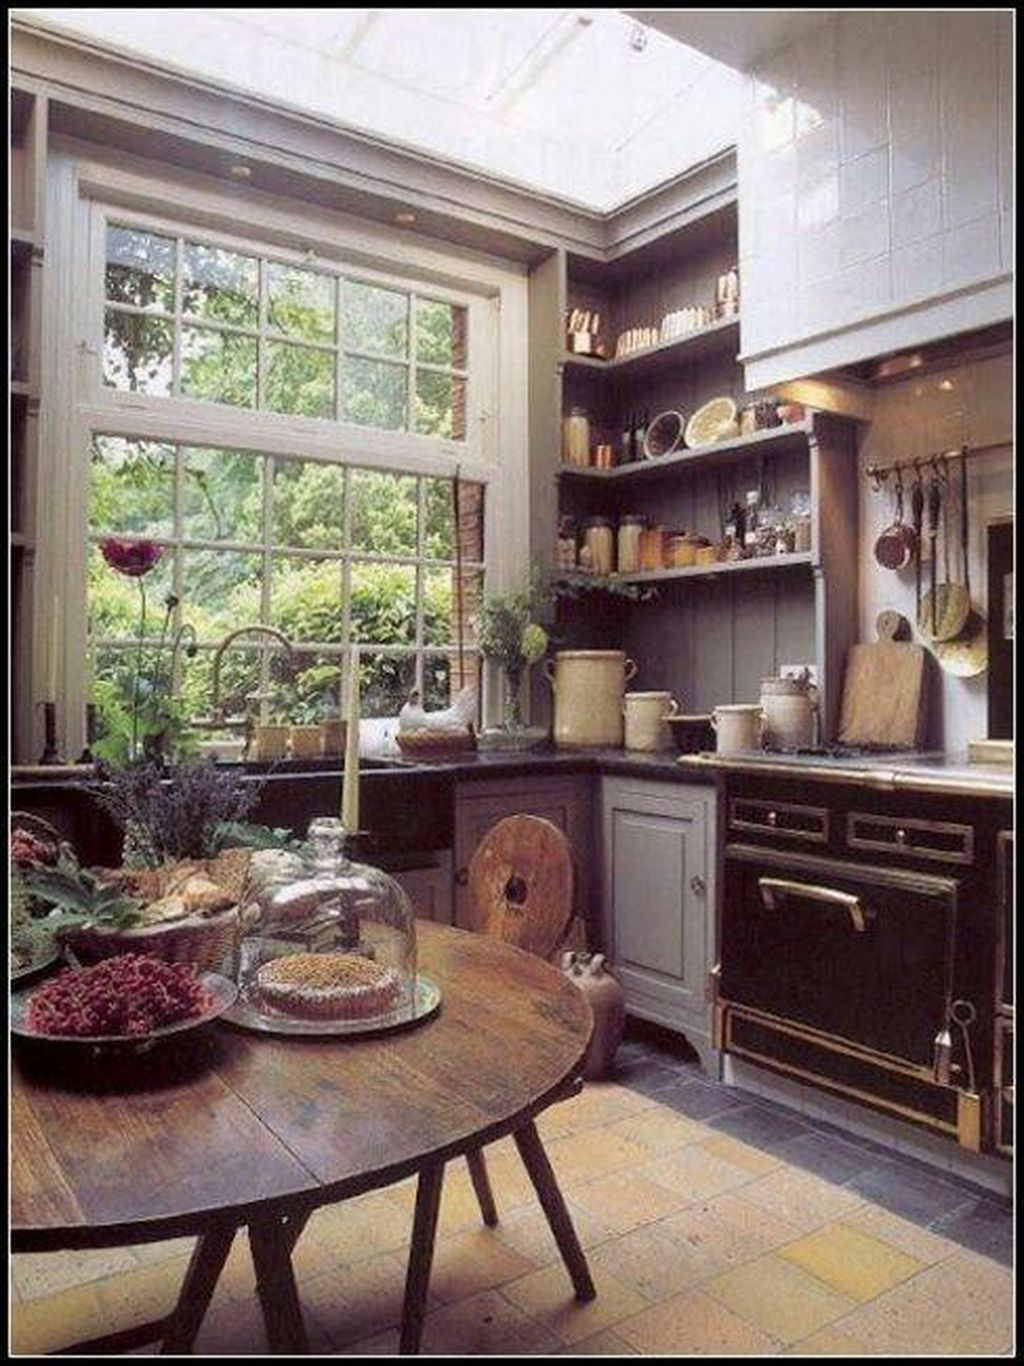 Inspiring Traditional Victorian Kitchen Remodel Ideas 11